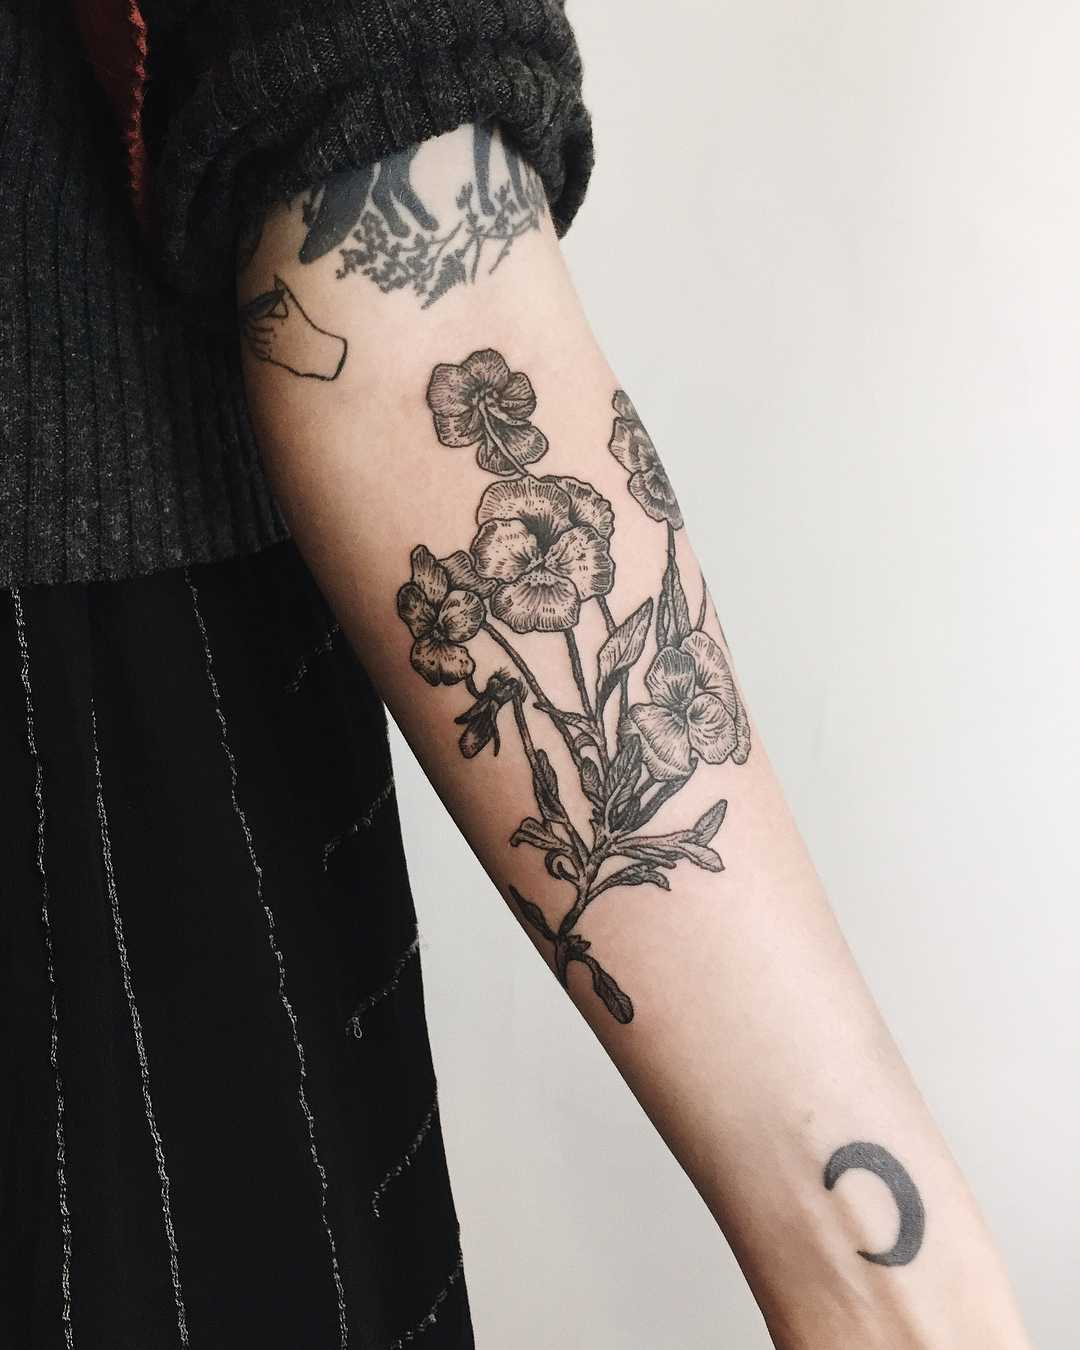 Pansies tattoo on the forearm